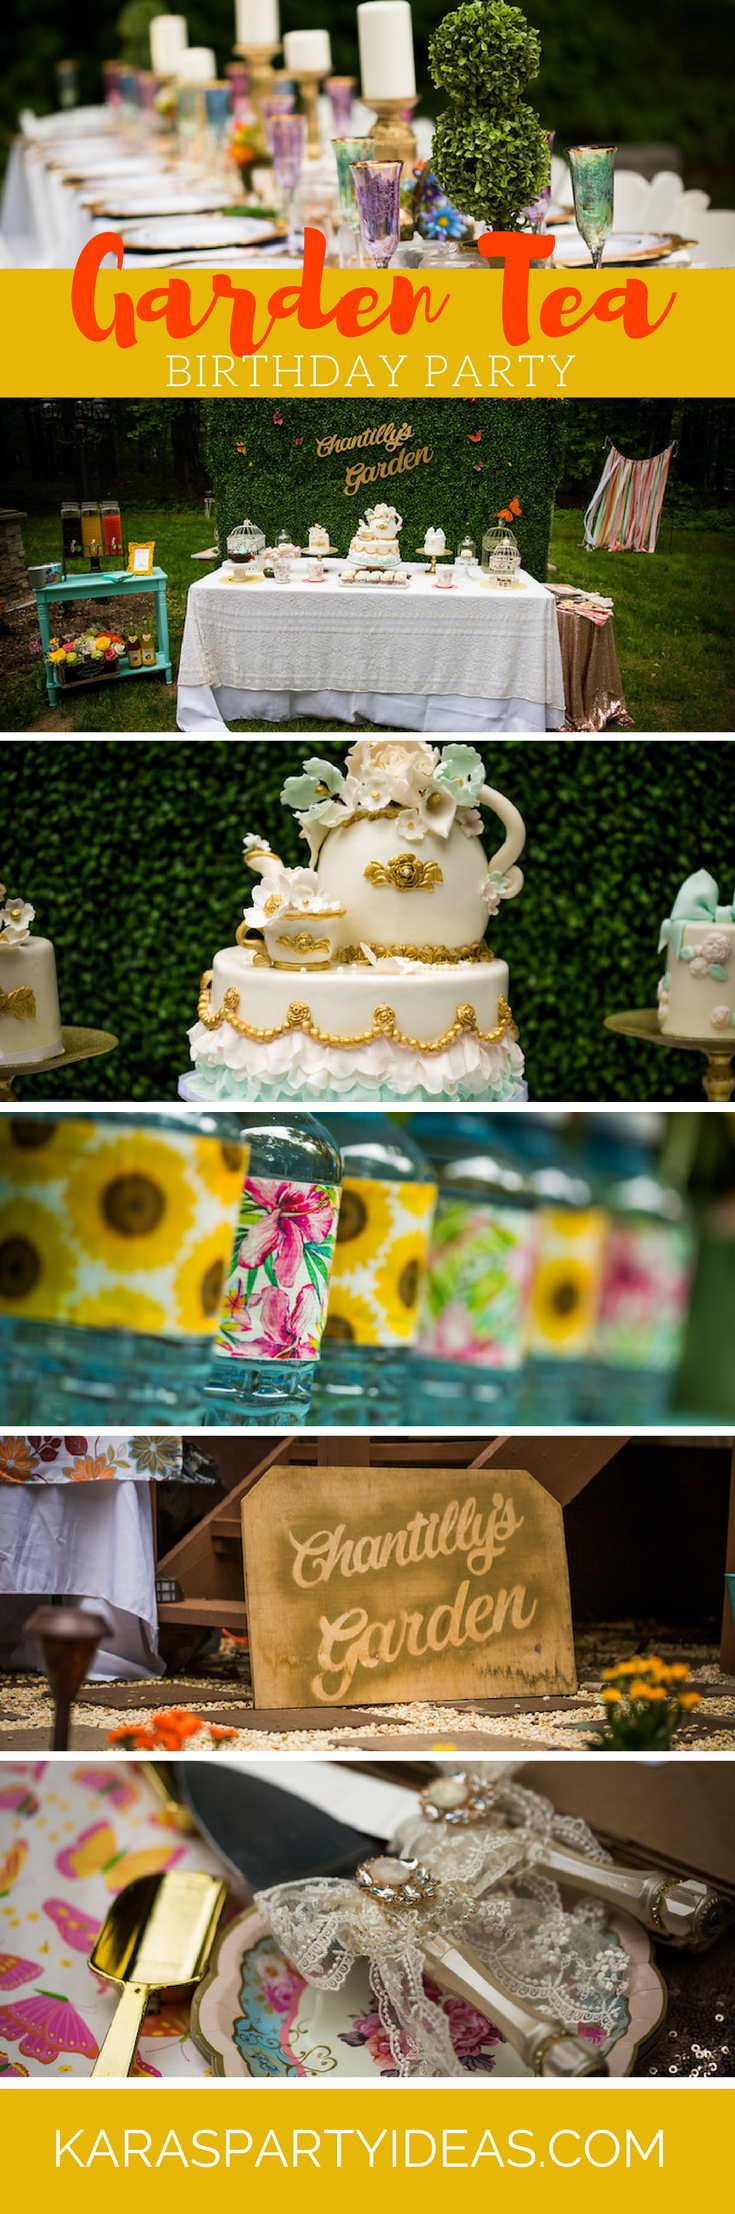 Garden Tea Birthday Party via Kara's Party Ideas - KarasPartyIdeas.com